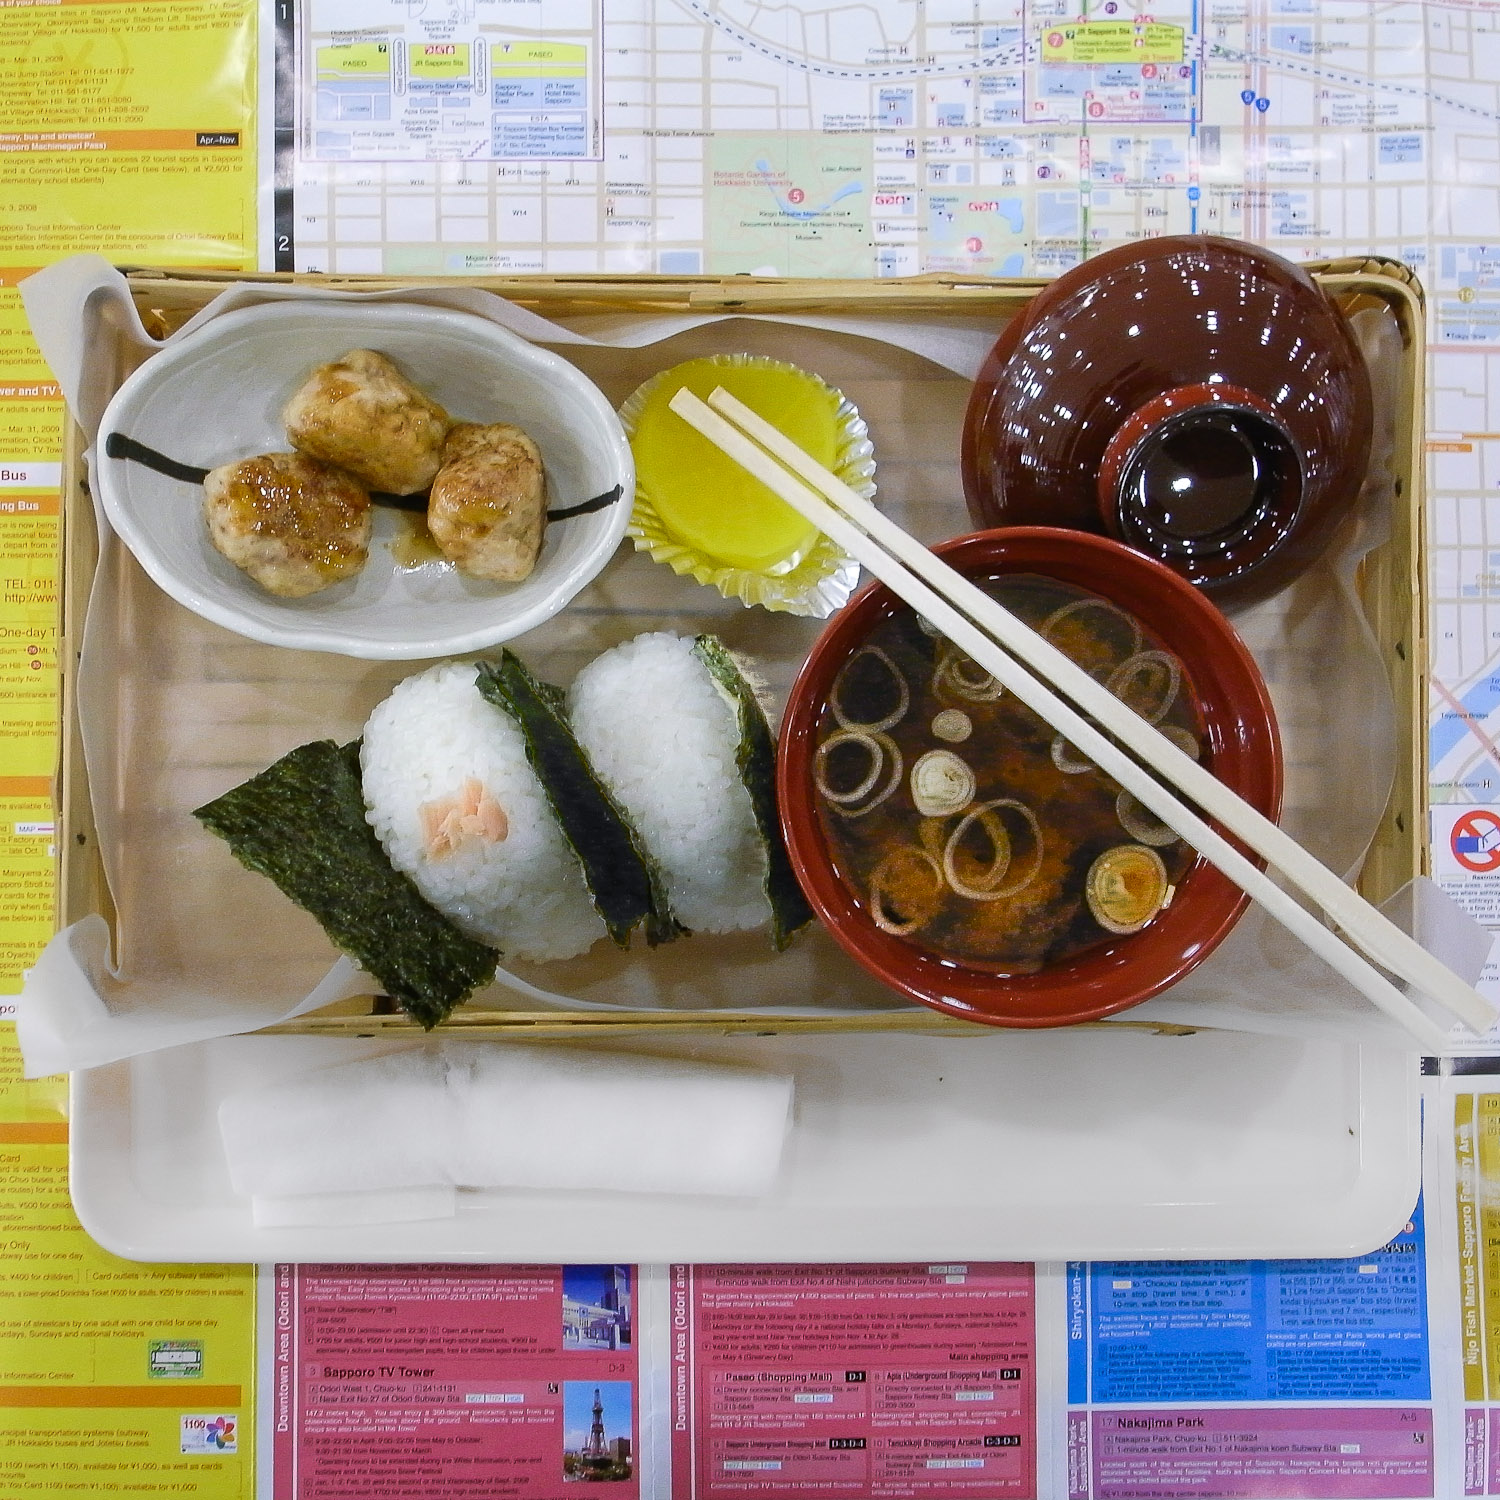 The lunch tray at the train depot in Sapporo, Japan, was the Goldilocks of lunches, balanced in every regard—neither too small nor too big, slow yet fast and as indulgent as it was austere. It consisted of three small chicken meatballs, takuan pickled radish, miso soup, and onigiri rice balls wrapped in nori. One was filled with cooked salmon flakes, the other with a pickled  ume  apricot.